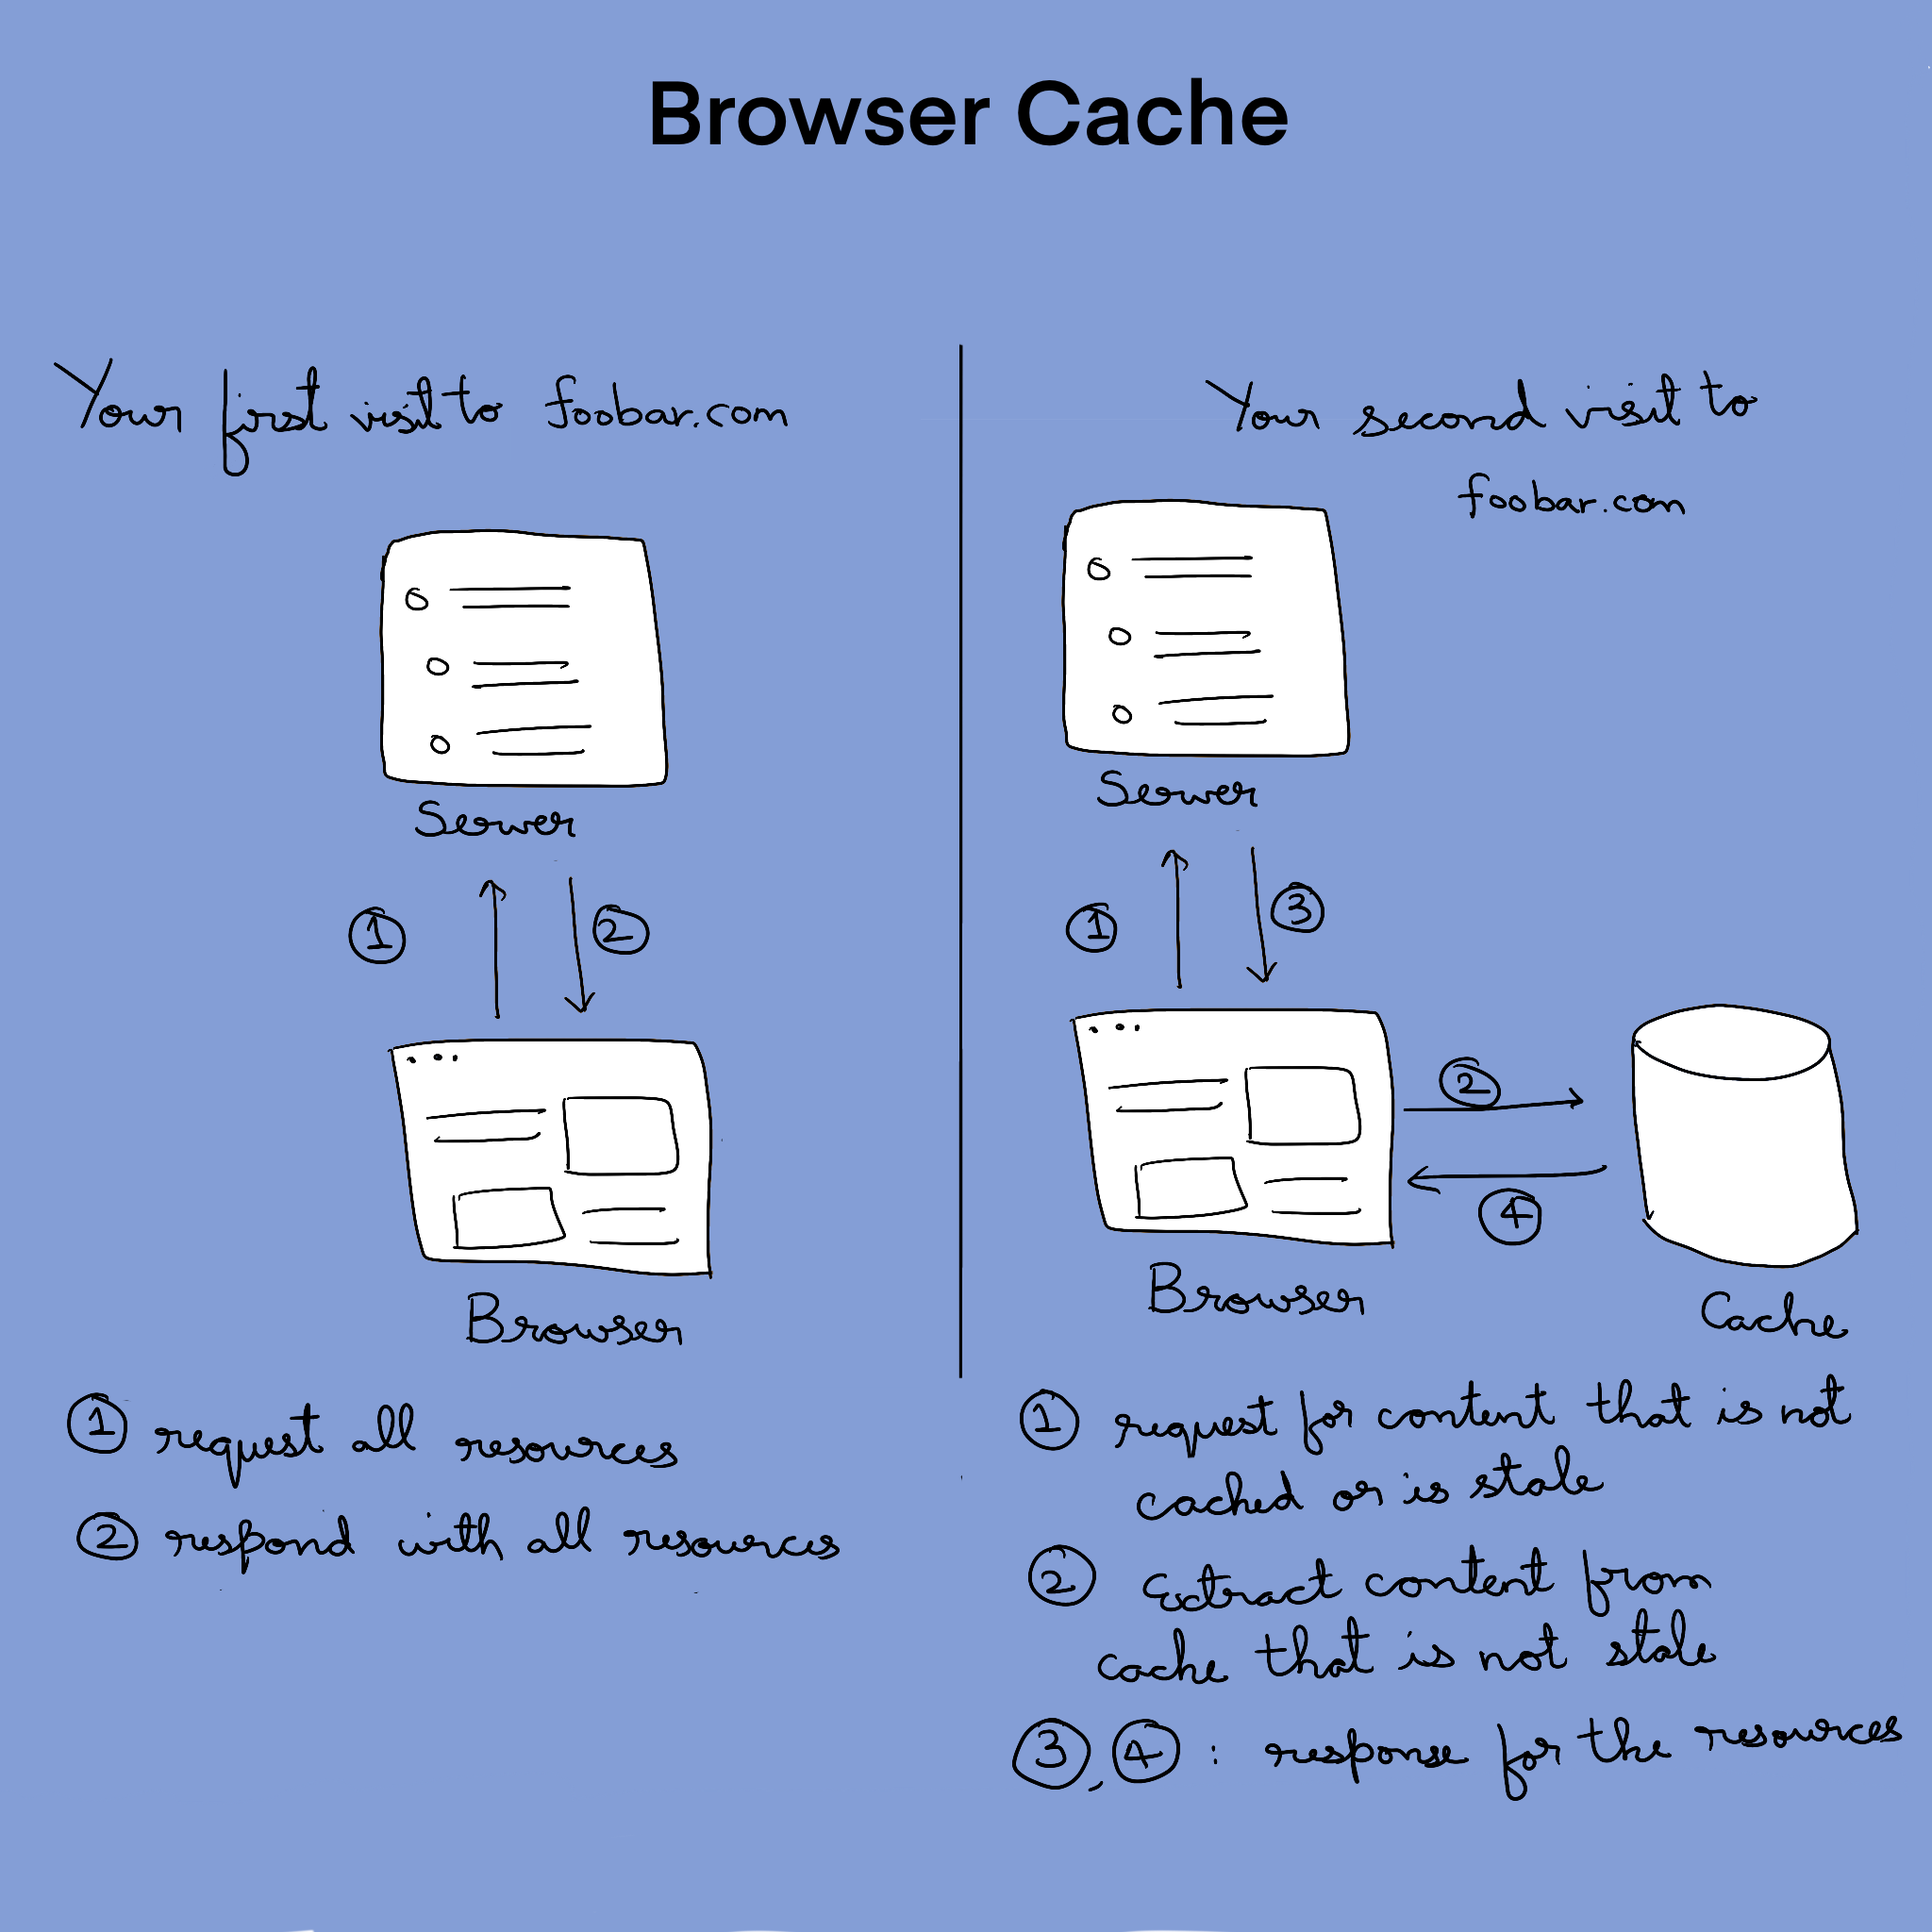 BrowserCache.png